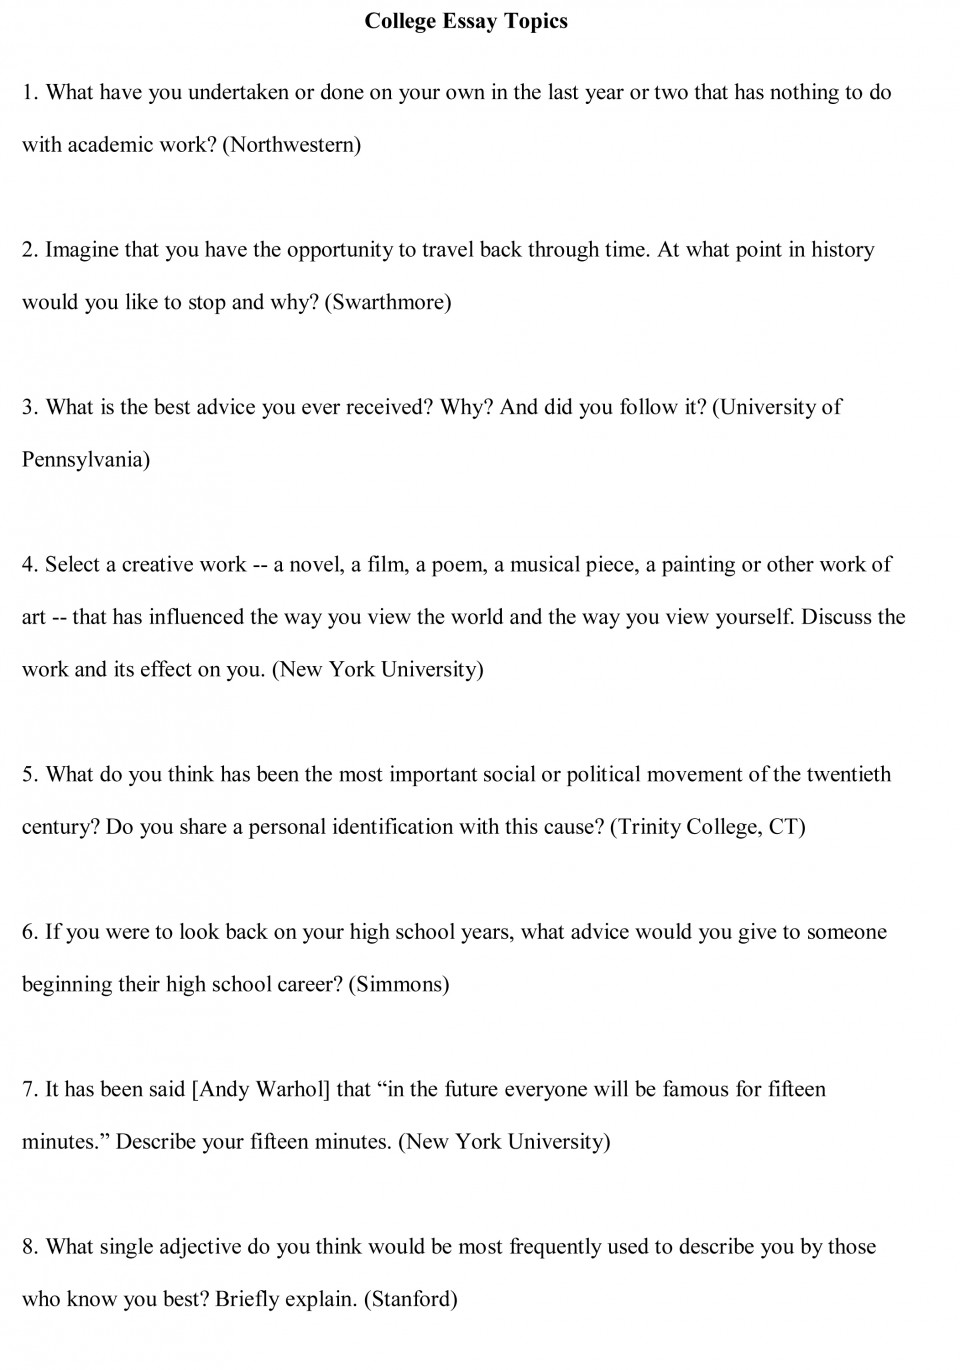 014 Essay Topics College Free Sample1 Archaicawful For 8th Grade List Class 10 Questions Macbeth Act 2 960